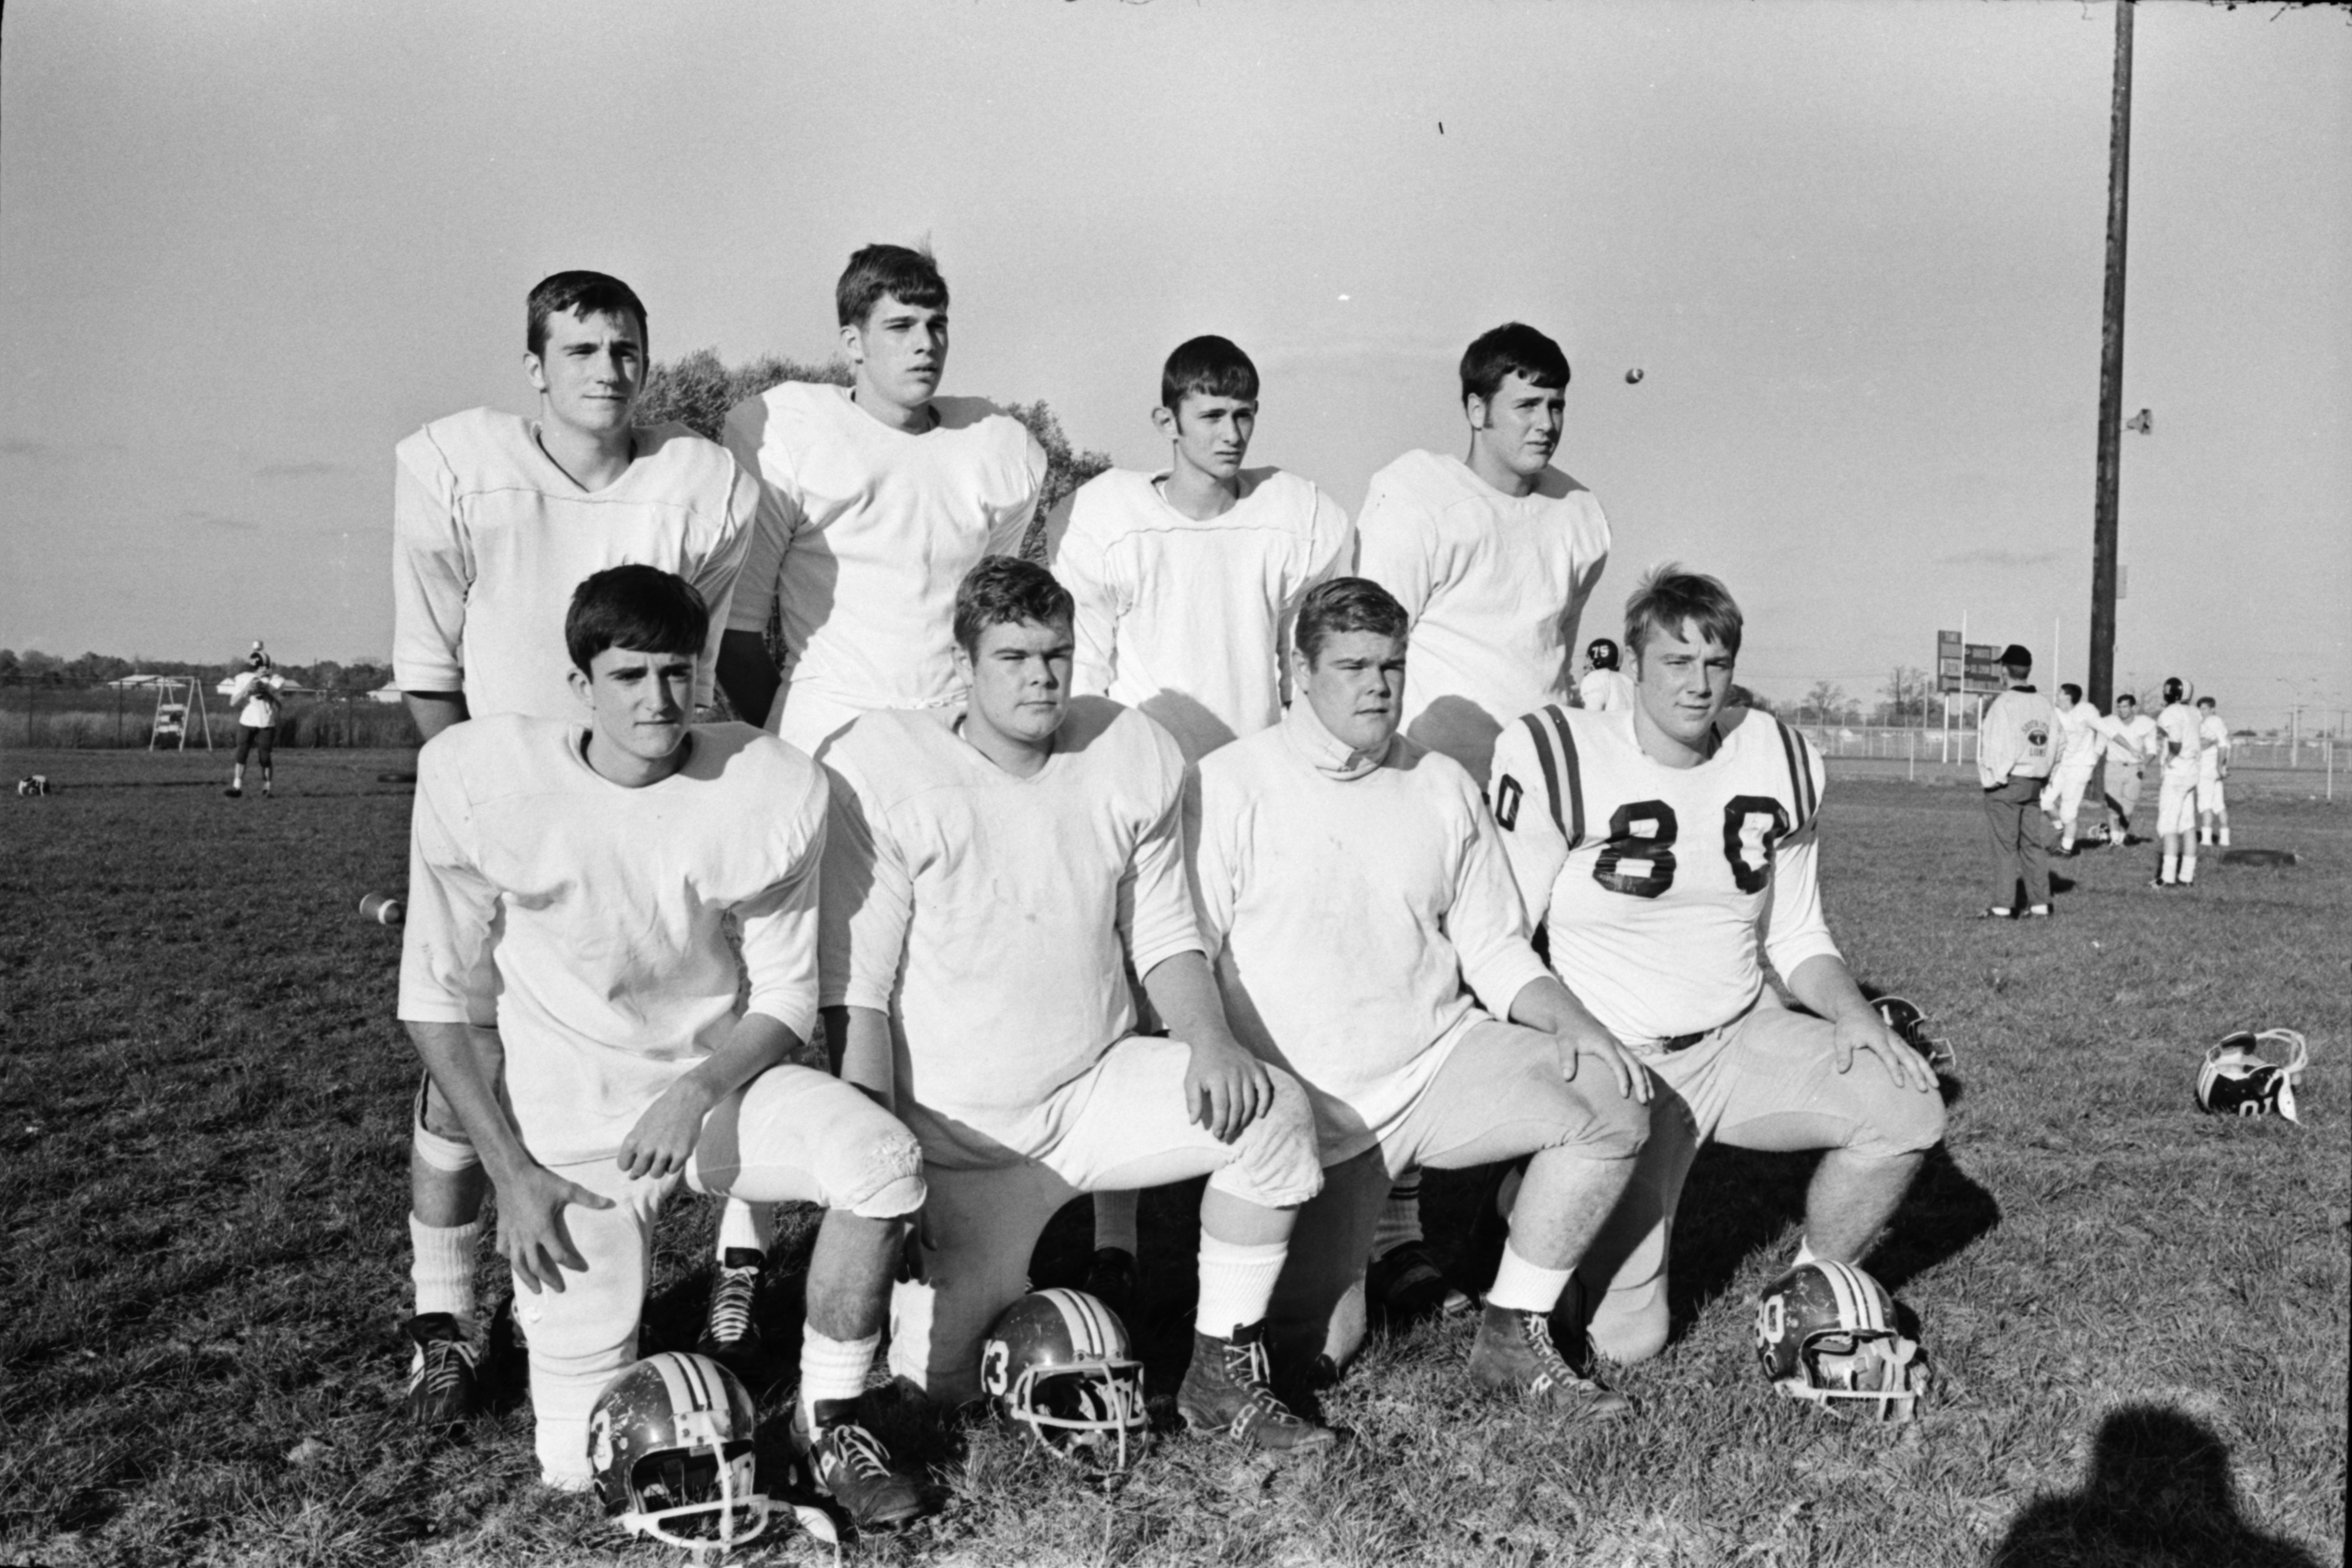 South Lyon High School Football Players, October 1969 image